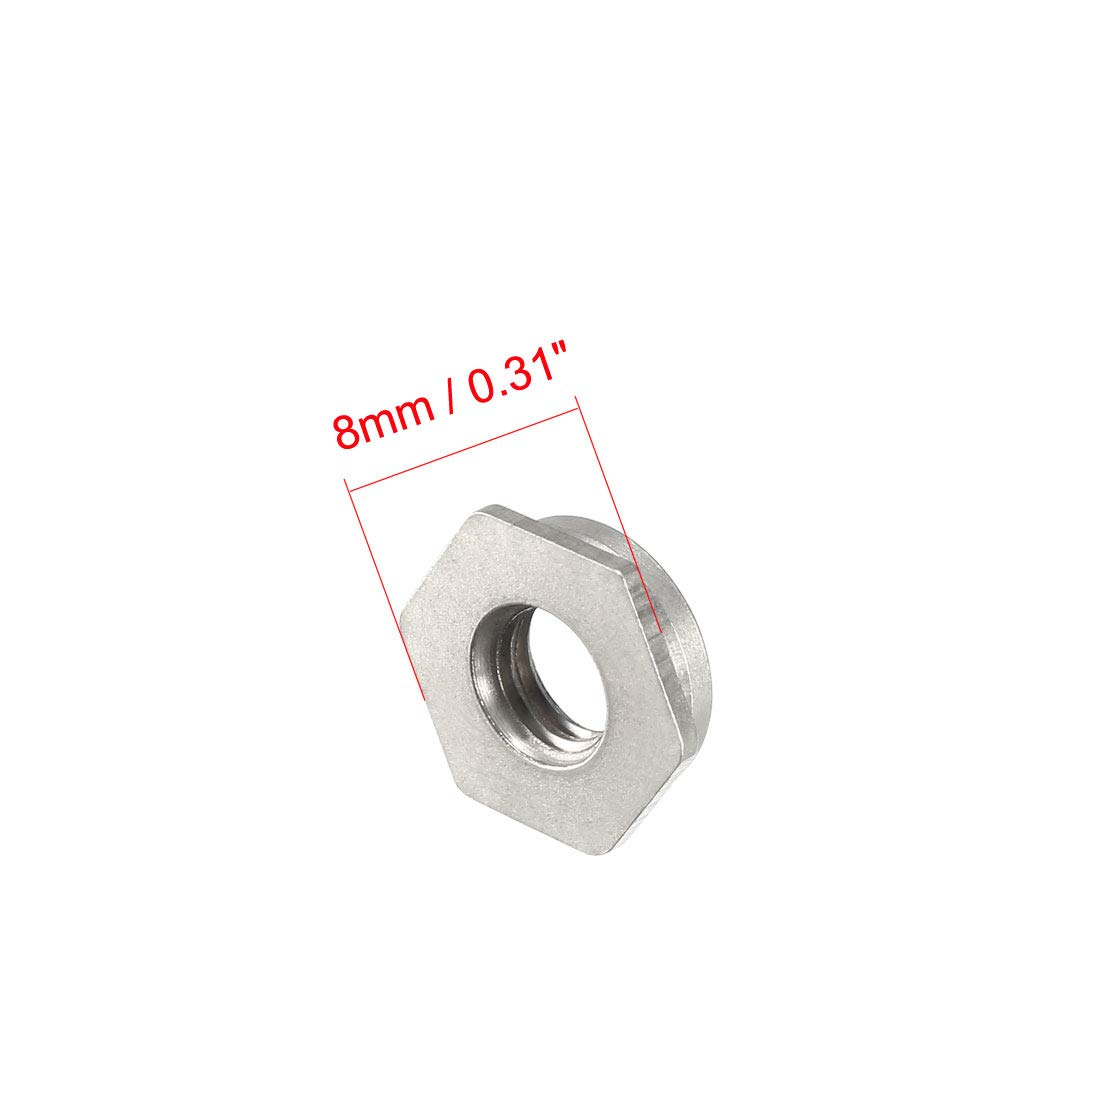 uxcell M4 x 0.7mm Pitch Hex Head Carbon Steel Blind Hole Self Clinching Standoff Nuts Pack of 100